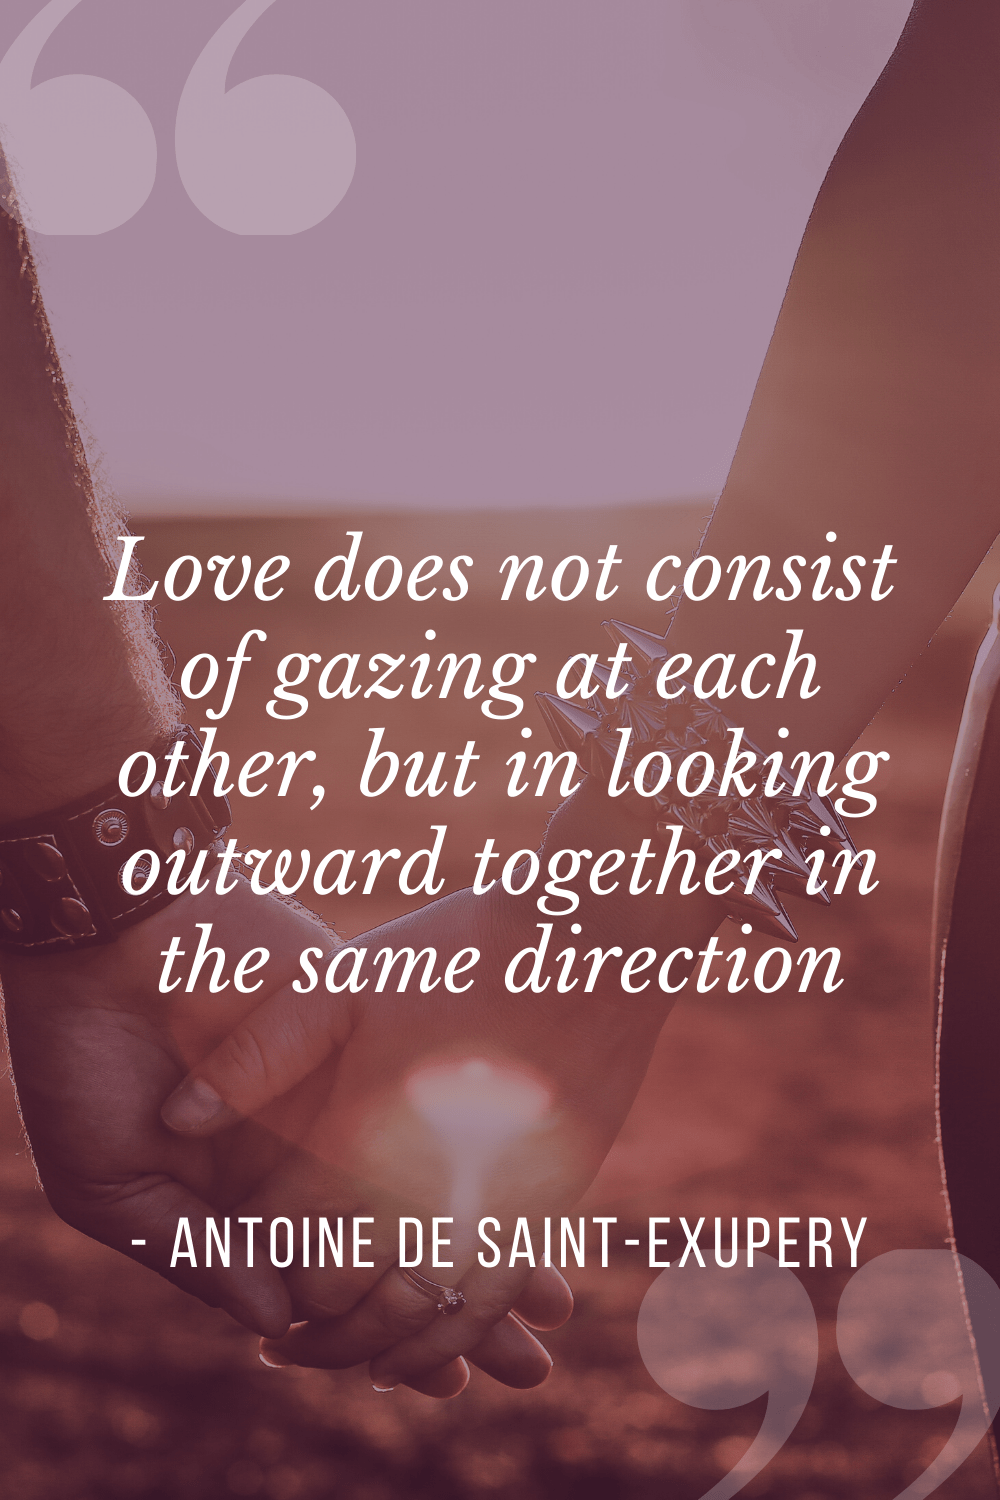 """Love does not consist of gazing at each other, but in looking outward together in the same direction"", Antoine de Saint-Exupéry"